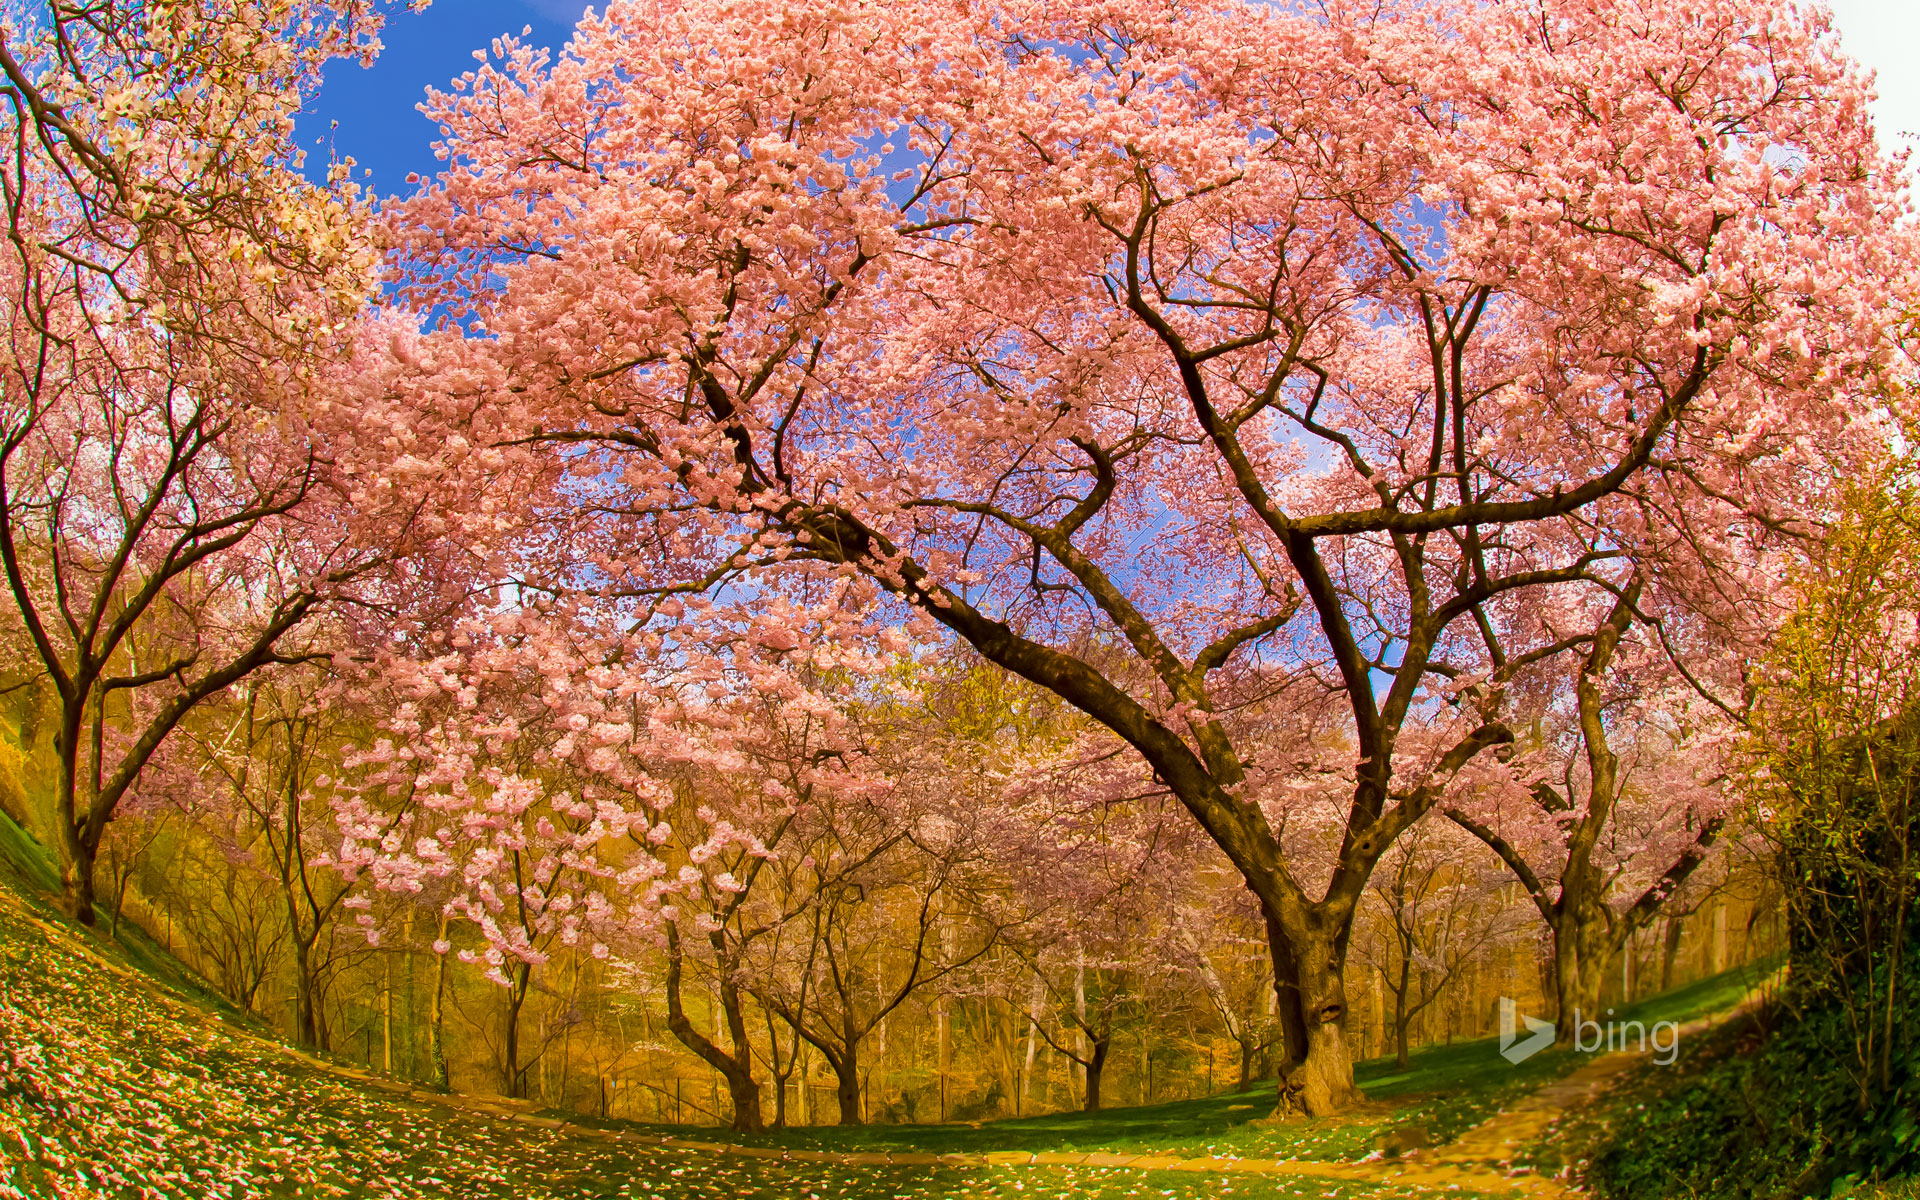 Cherry blossoms in Dumbarton Oaks Gardens, Washington, D.C.